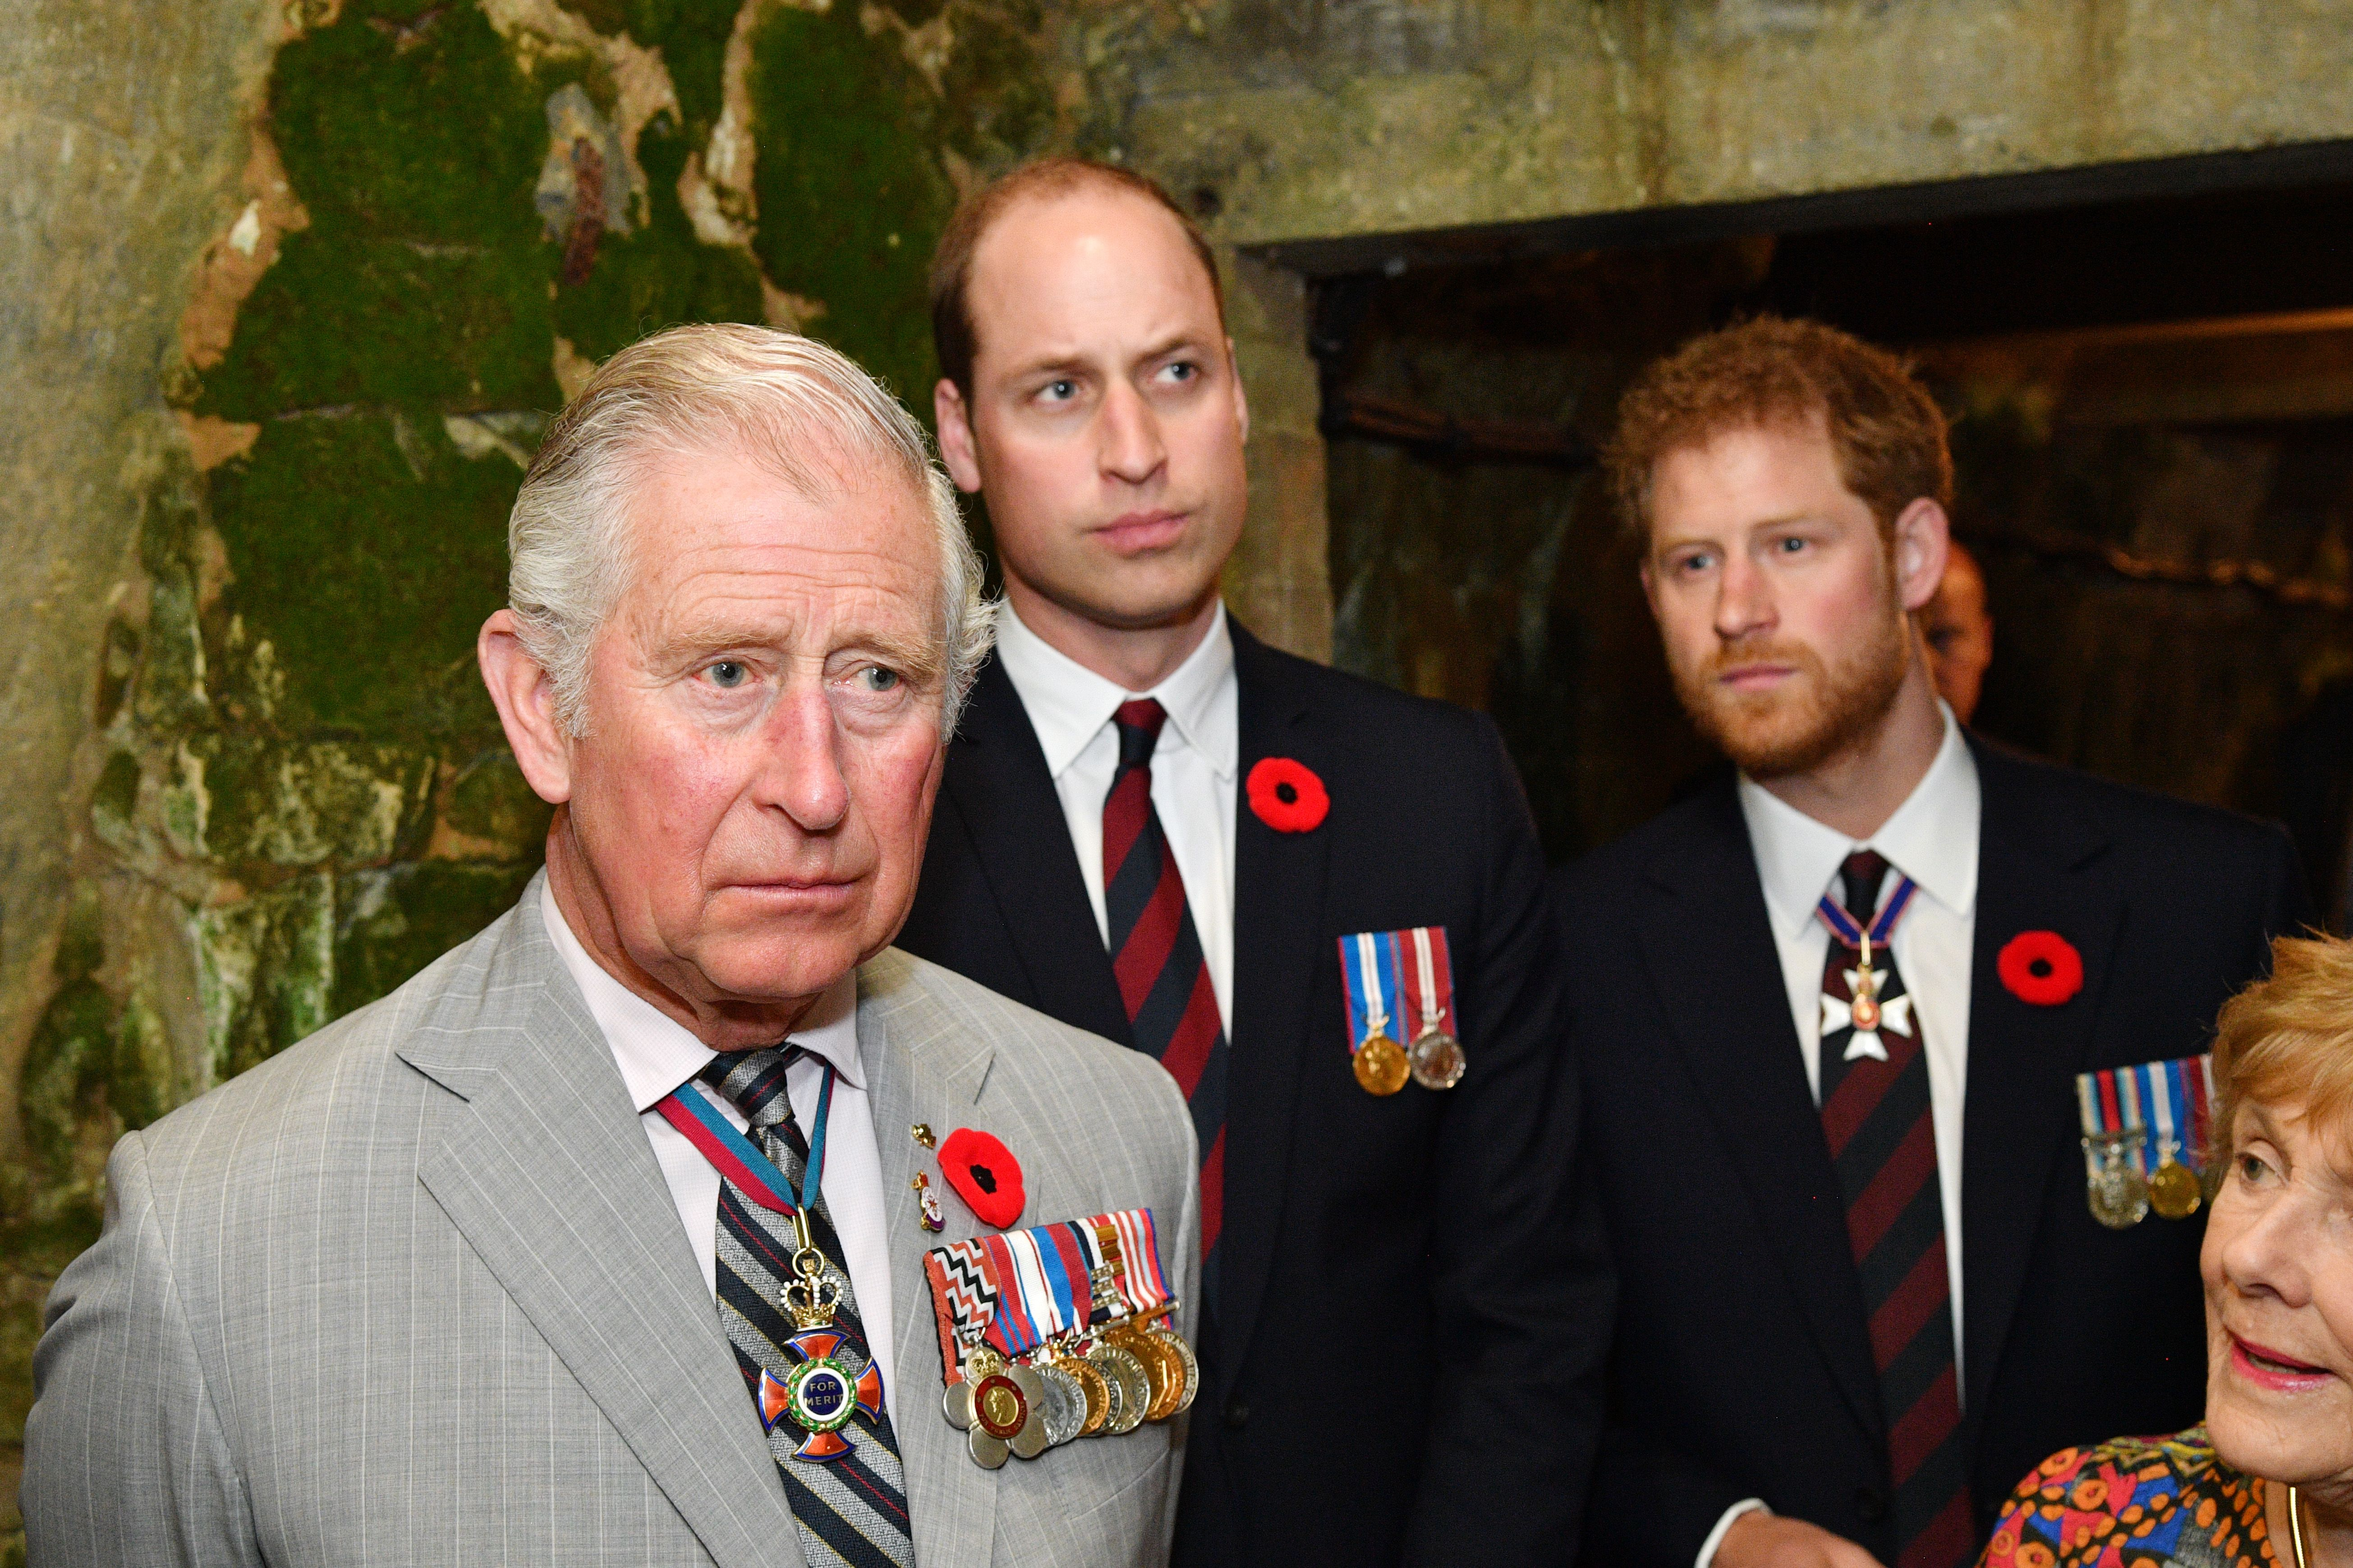 Prince Charles, Prince William and Prince Harry visit the tunnel and trenches at Vimy Memorial Park on April 9, 2017 in Vimy, France | Photo: Getty Images